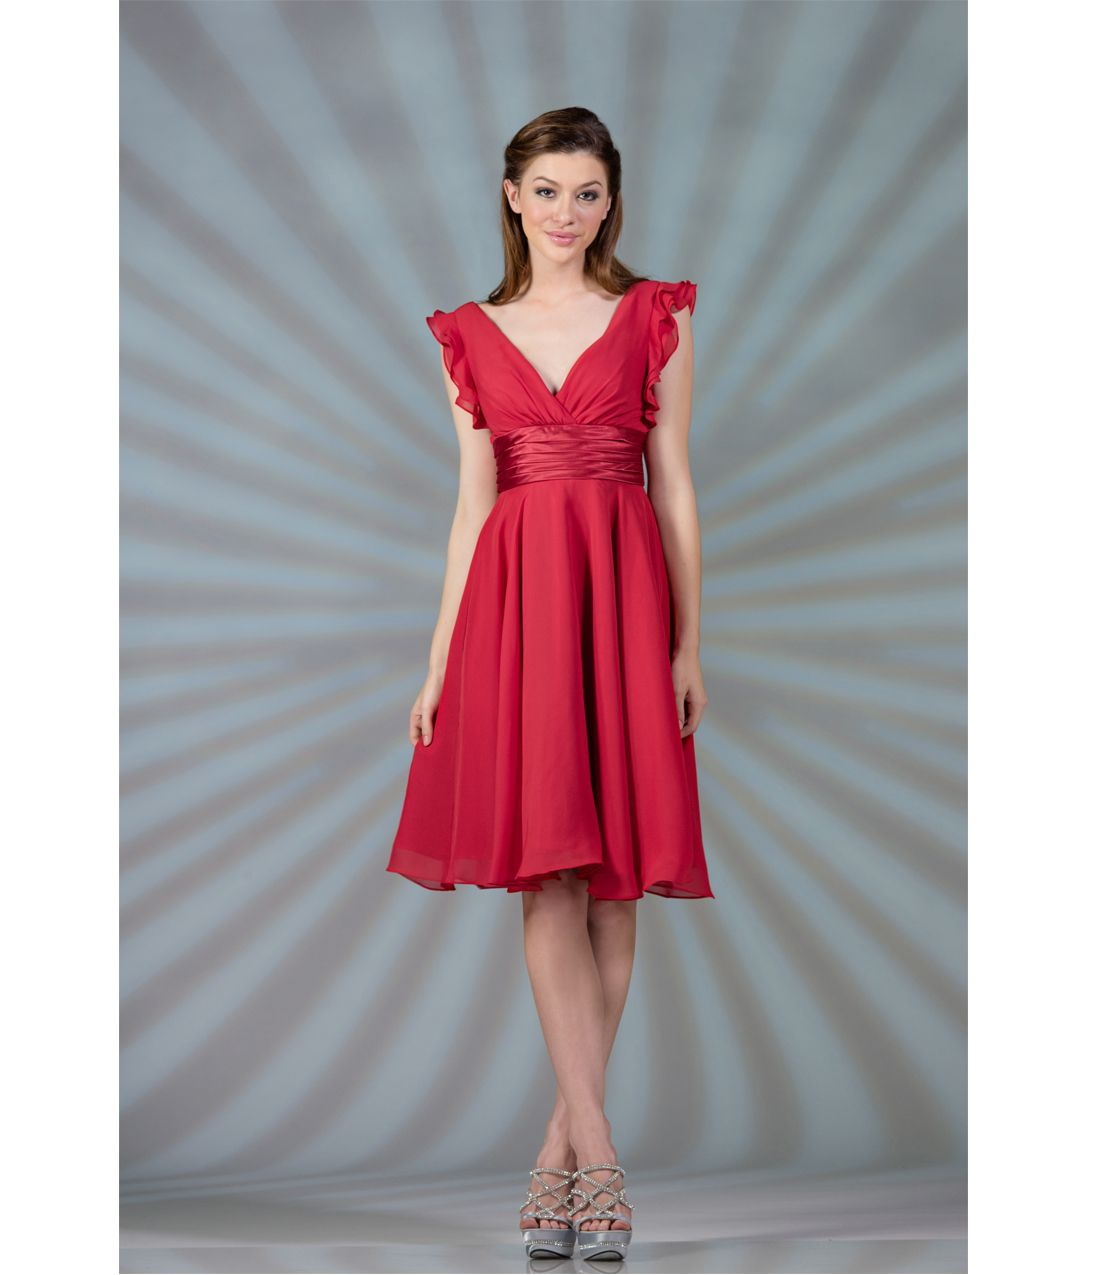 1000  images about Red dresses on Pinterest - Red bridesmaid ...